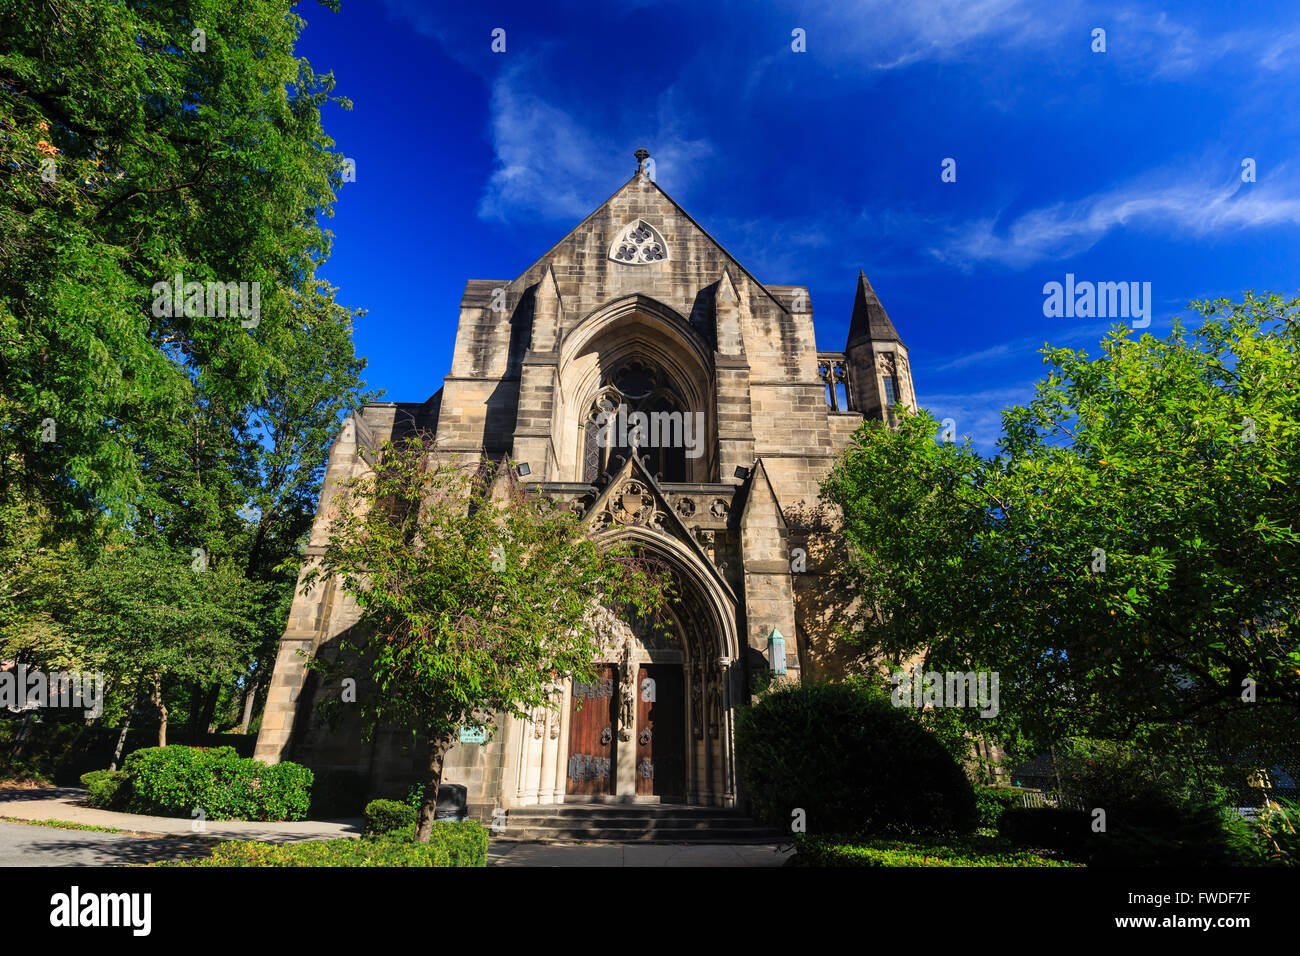 Church near The Cathedral Church of St. John the Divine, New York City - Stock Image